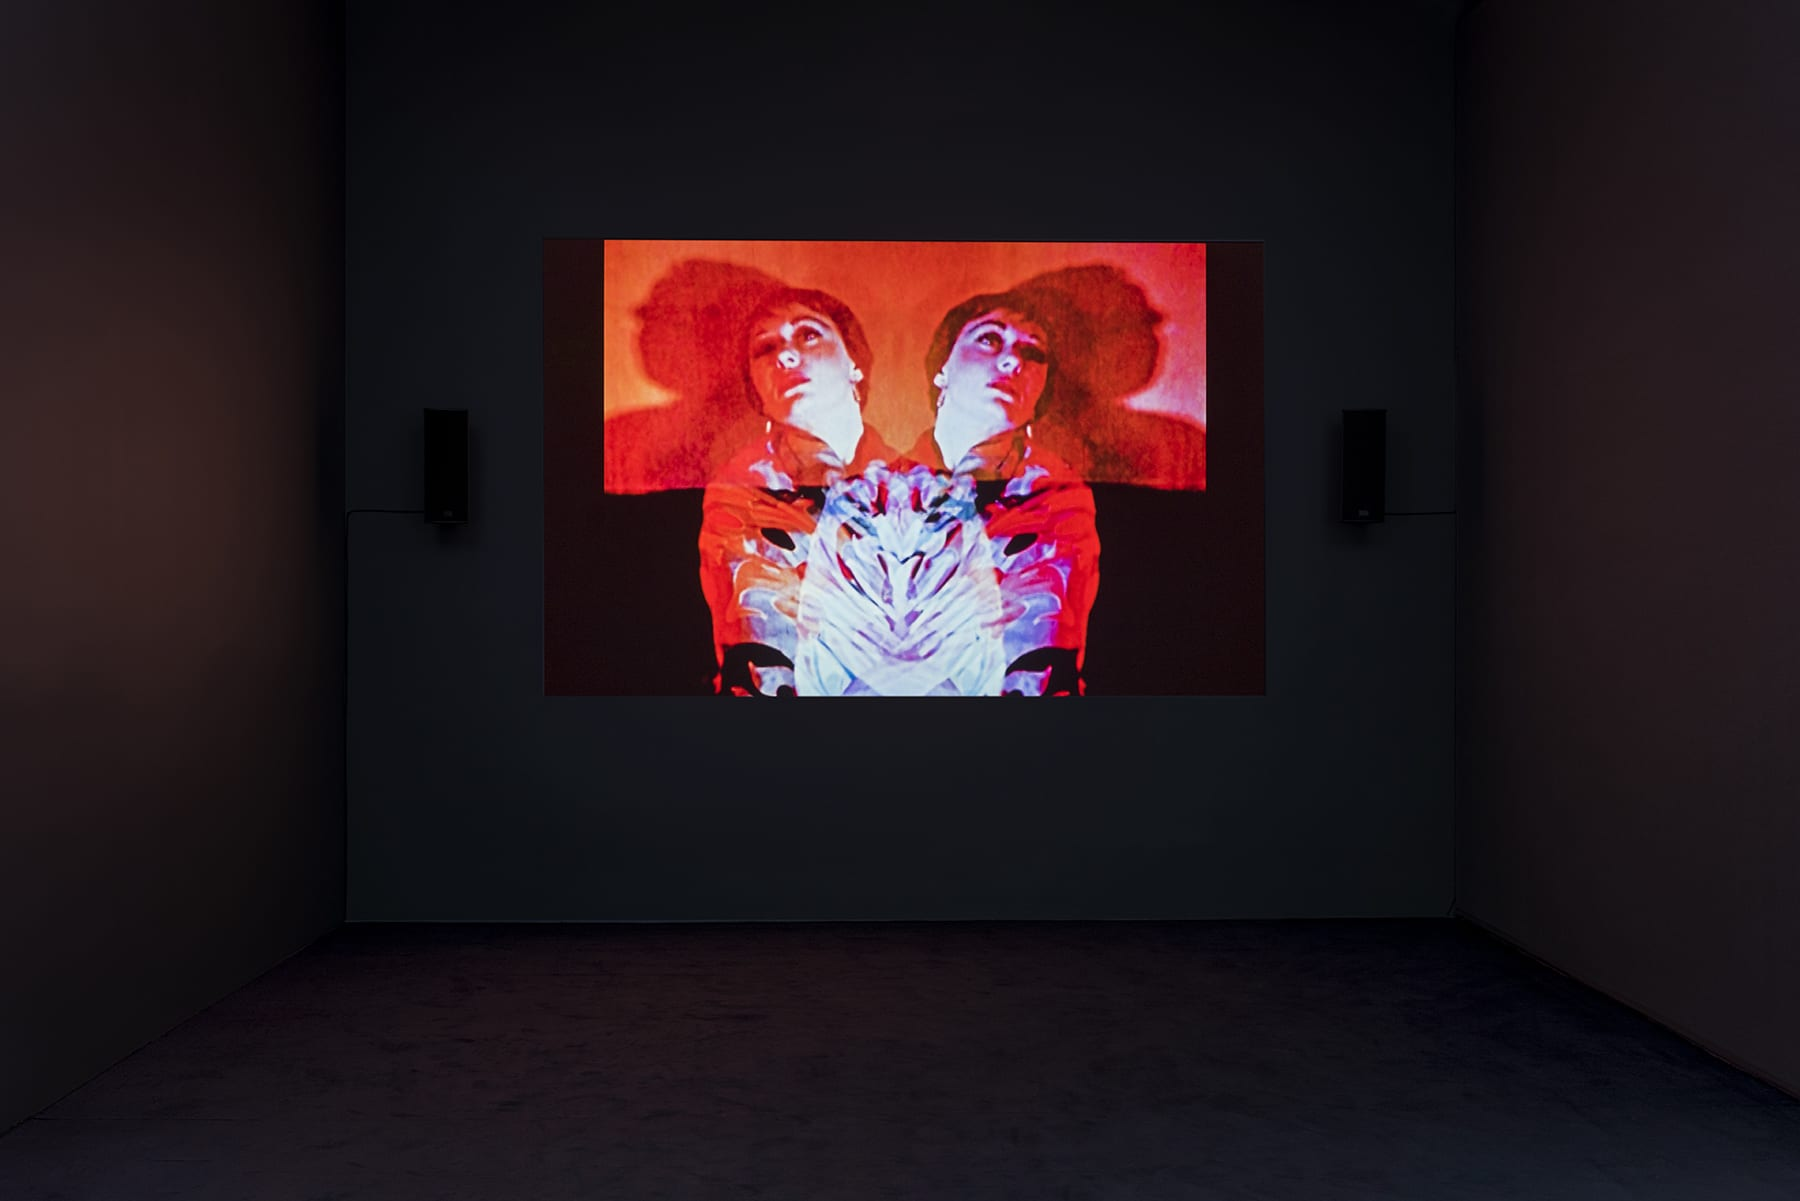 A red projection in a darkened room of a double image of a woman.